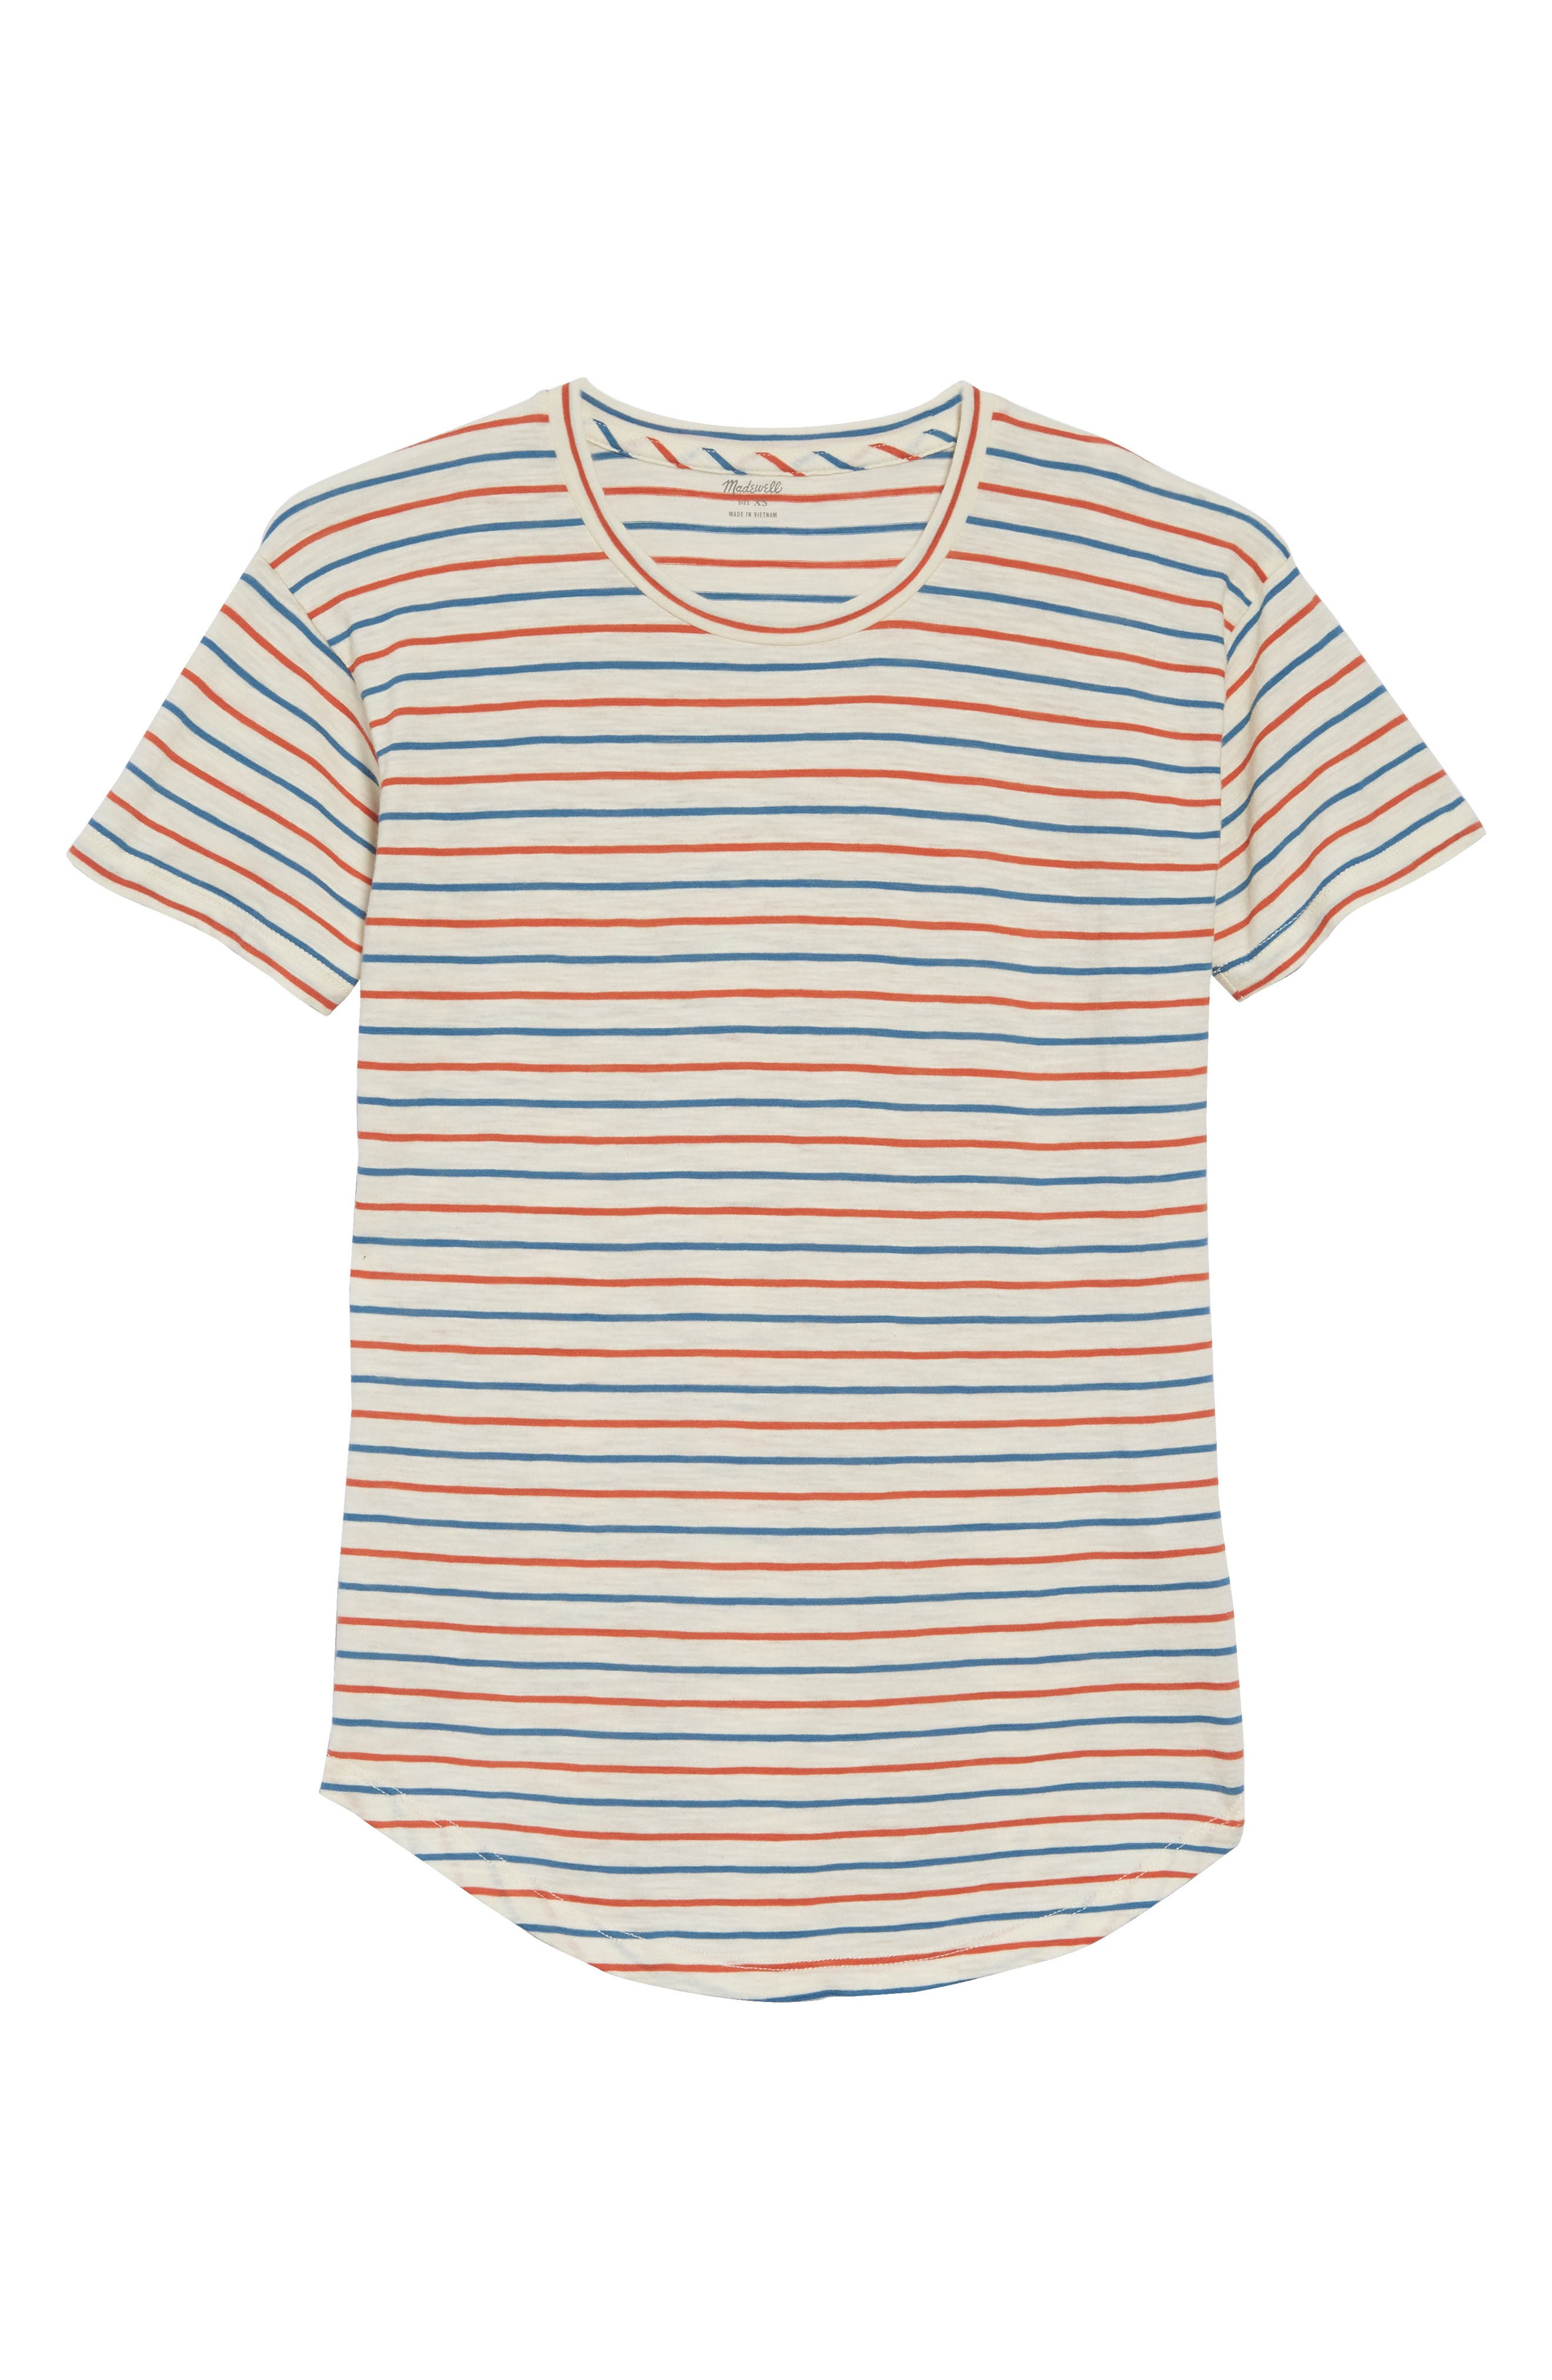 Whisper Cotton Stripe Crewneck Tee,                             Alternate thumbnail 3, color,                             900